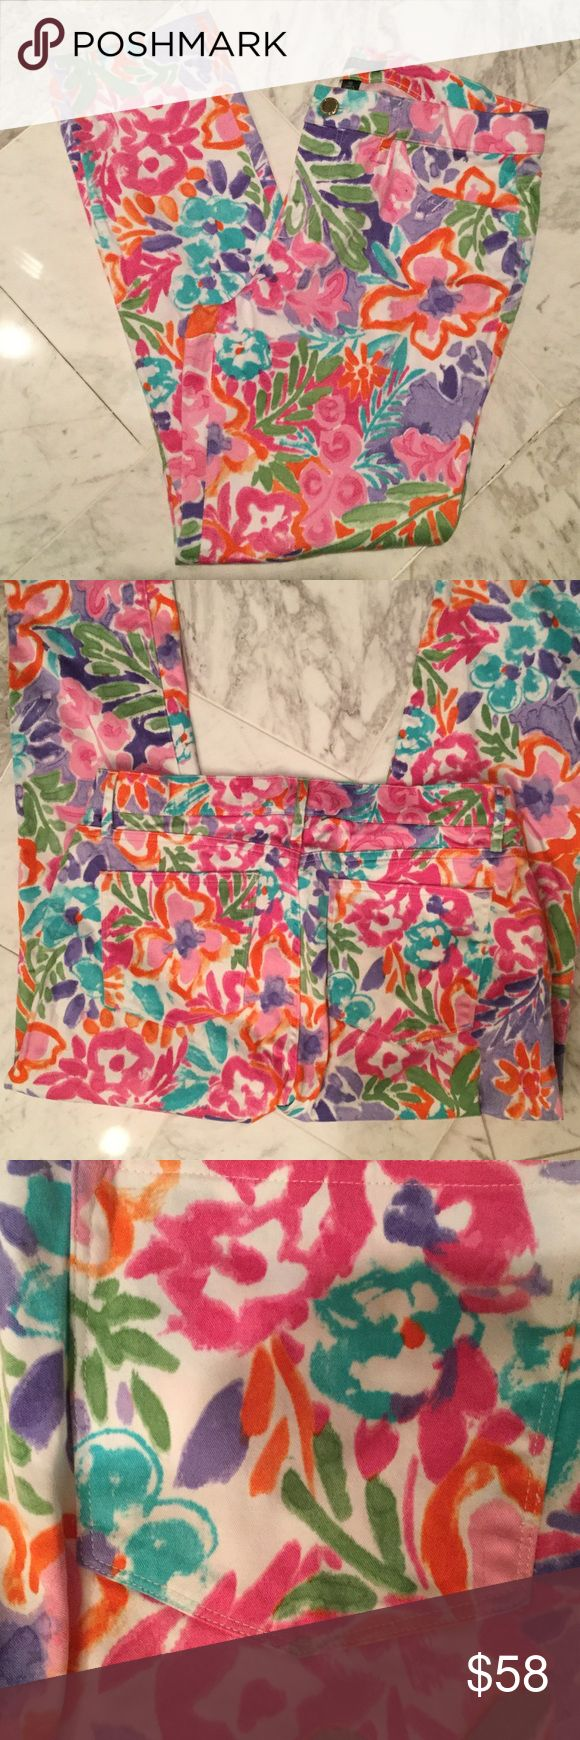 Ladies Ralph Lauren floral stretch pant Ladies beautiful floral stretch jean style pant . White background with pink, turquoise, orange, purple flowers. Very pretty print and perfect for spring summer months. Cotton spandex blend so they will keep their shape during a busy days worth of activities...10 full length worn once Lauren Ralph Lauren Jeans Skinny